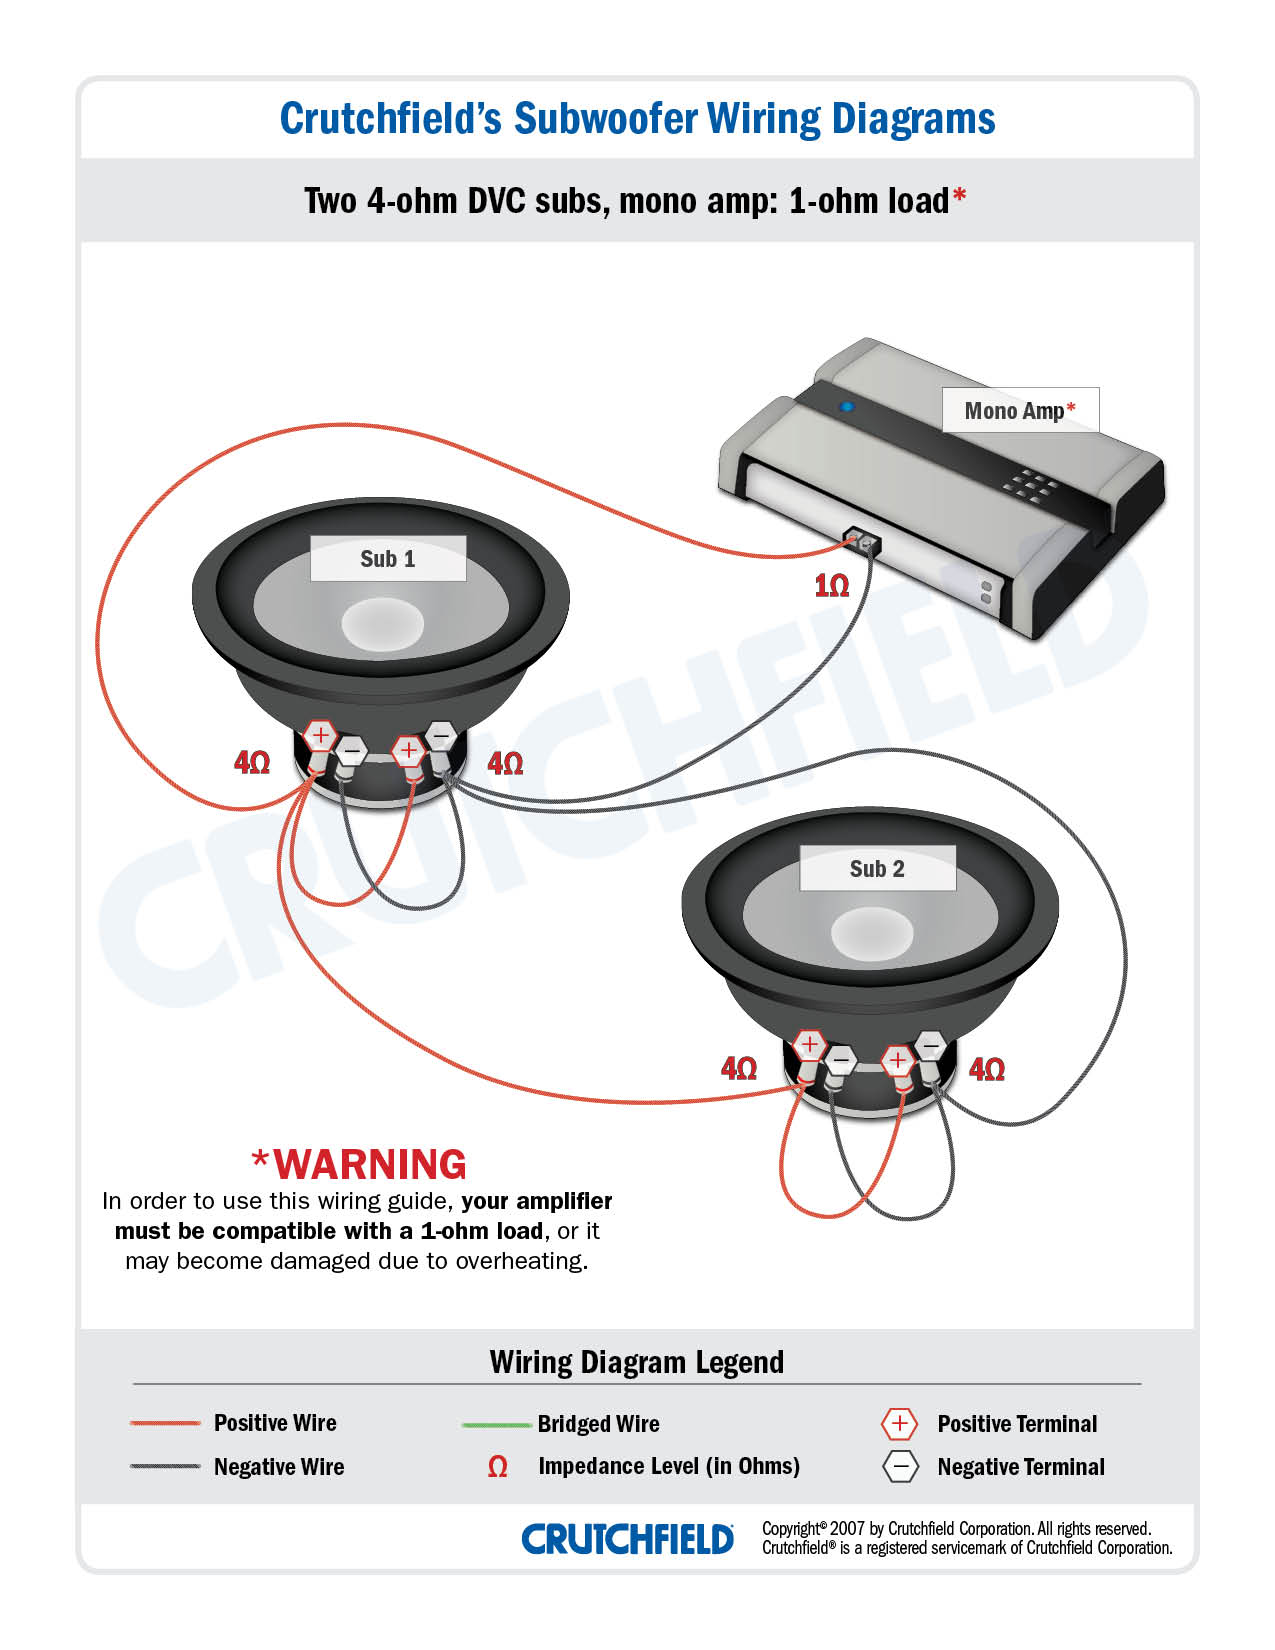 subwoofer wiring diagrams 2 dvc 4 ohm mono low imp